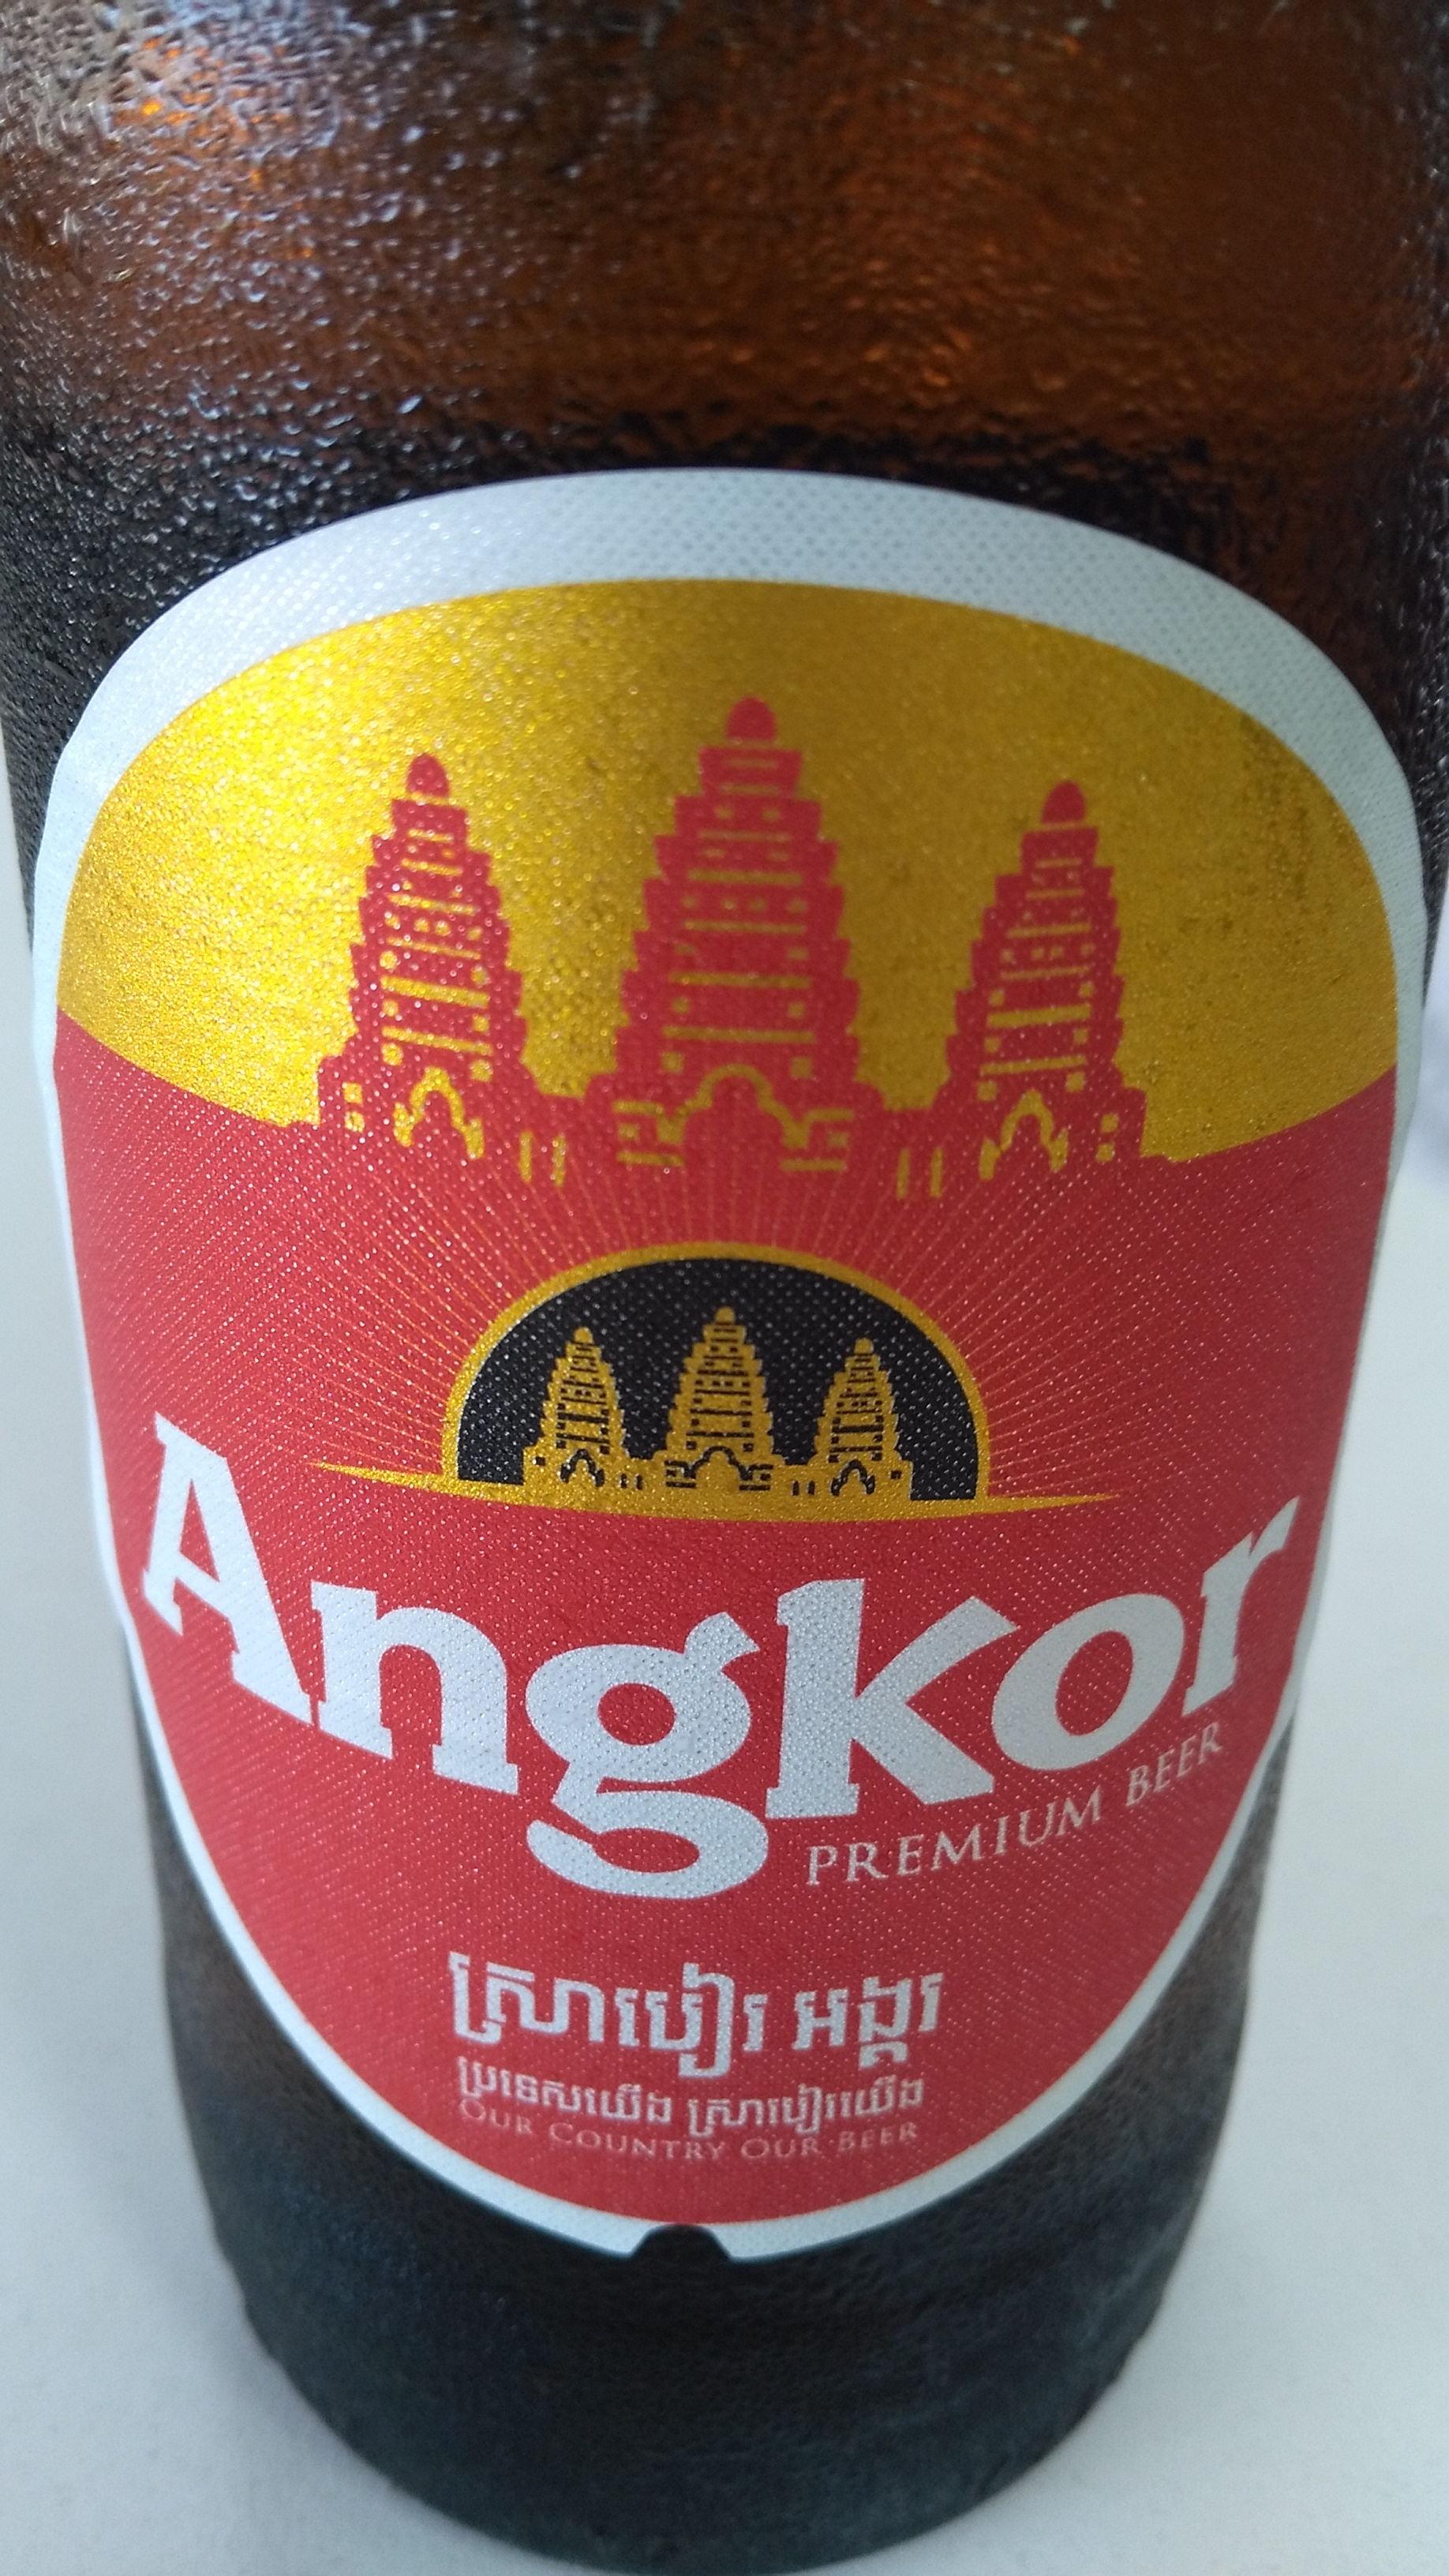 An Angkor Bottle - See the irony